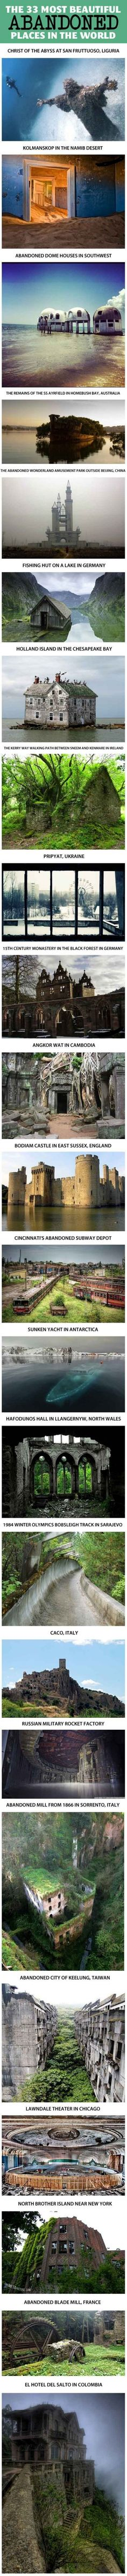 33 abandoned places. I want to visit all of these! Wow!